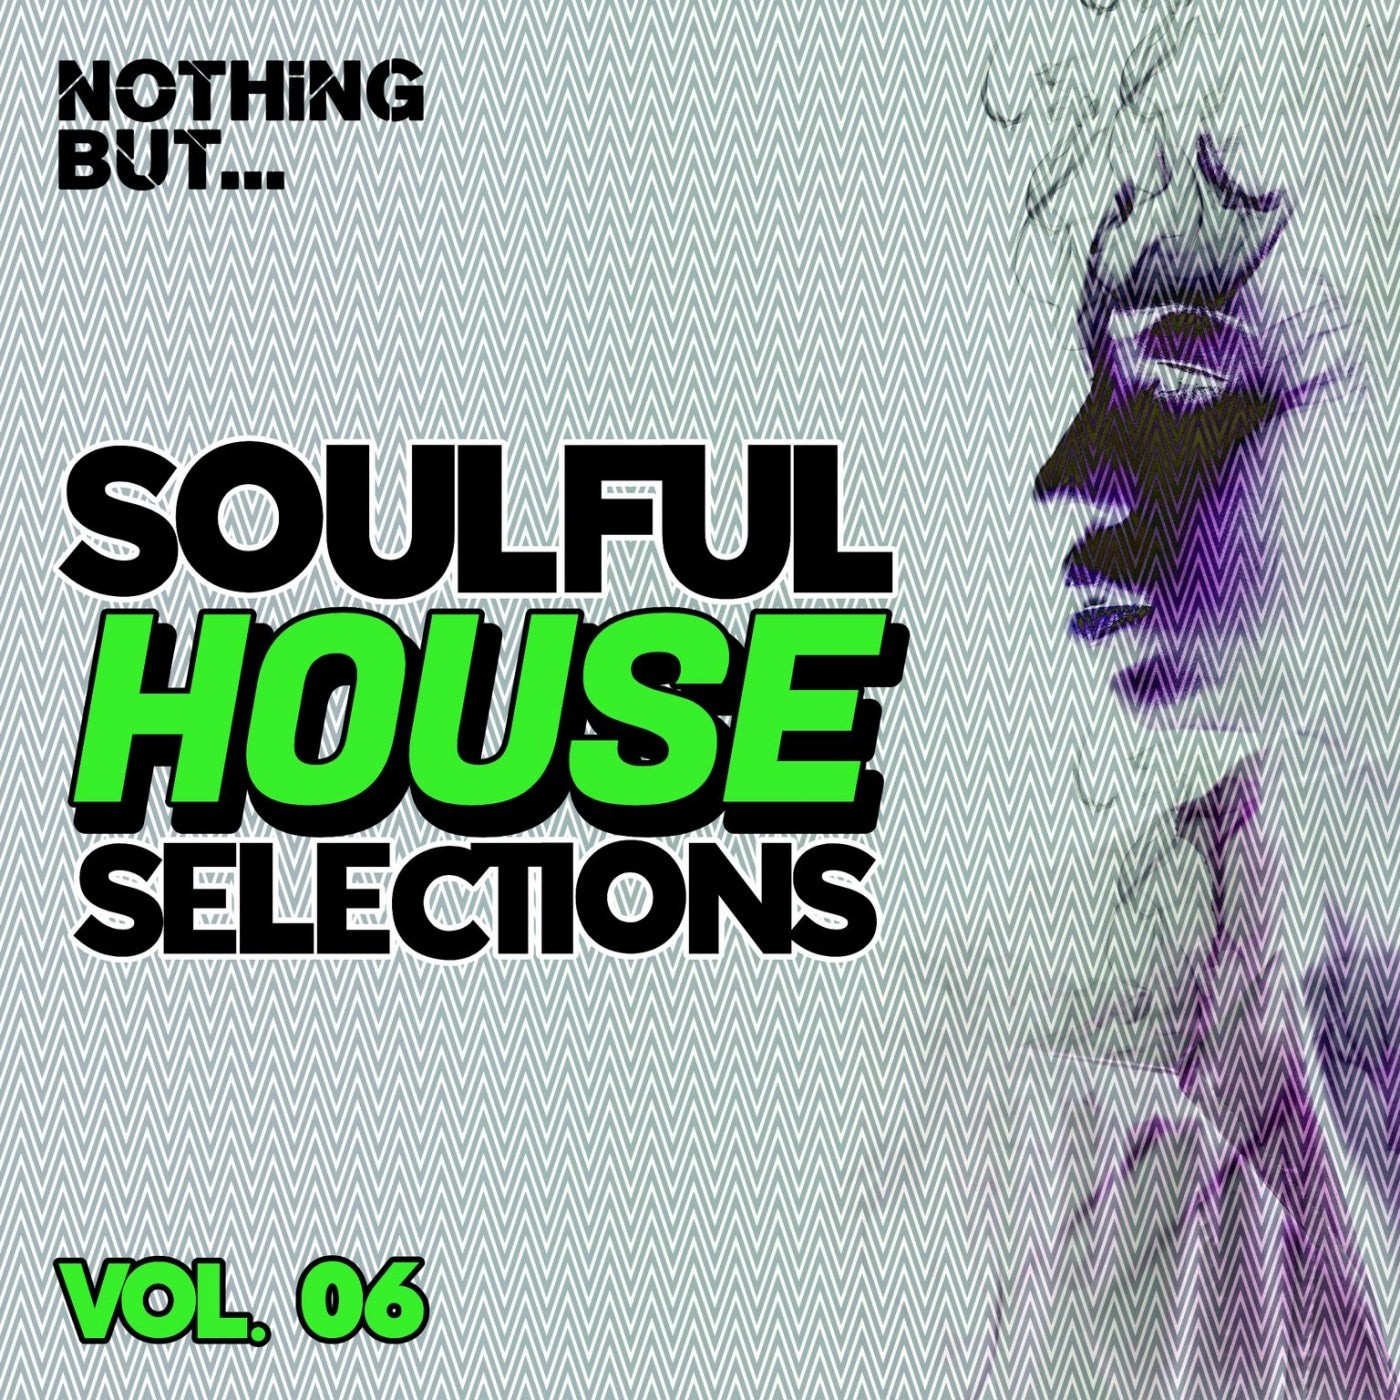 Various Performers - Nothing But Soulful House Selections, Vol. 06 (2021)